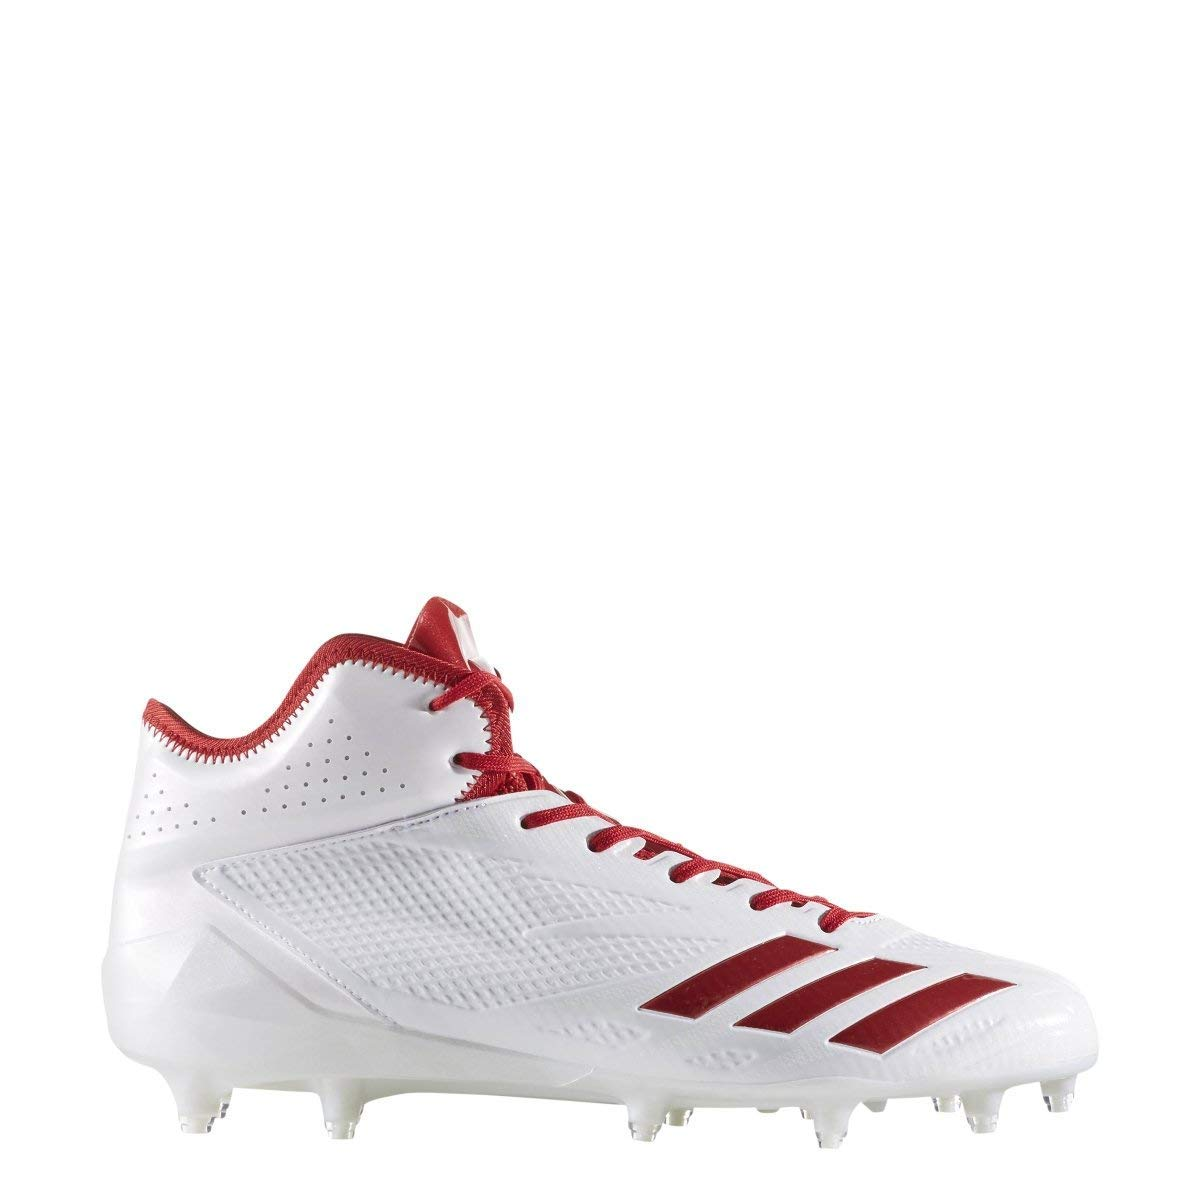 adidas Adizero 5Star 6.0 Mid Cleat Men's Football